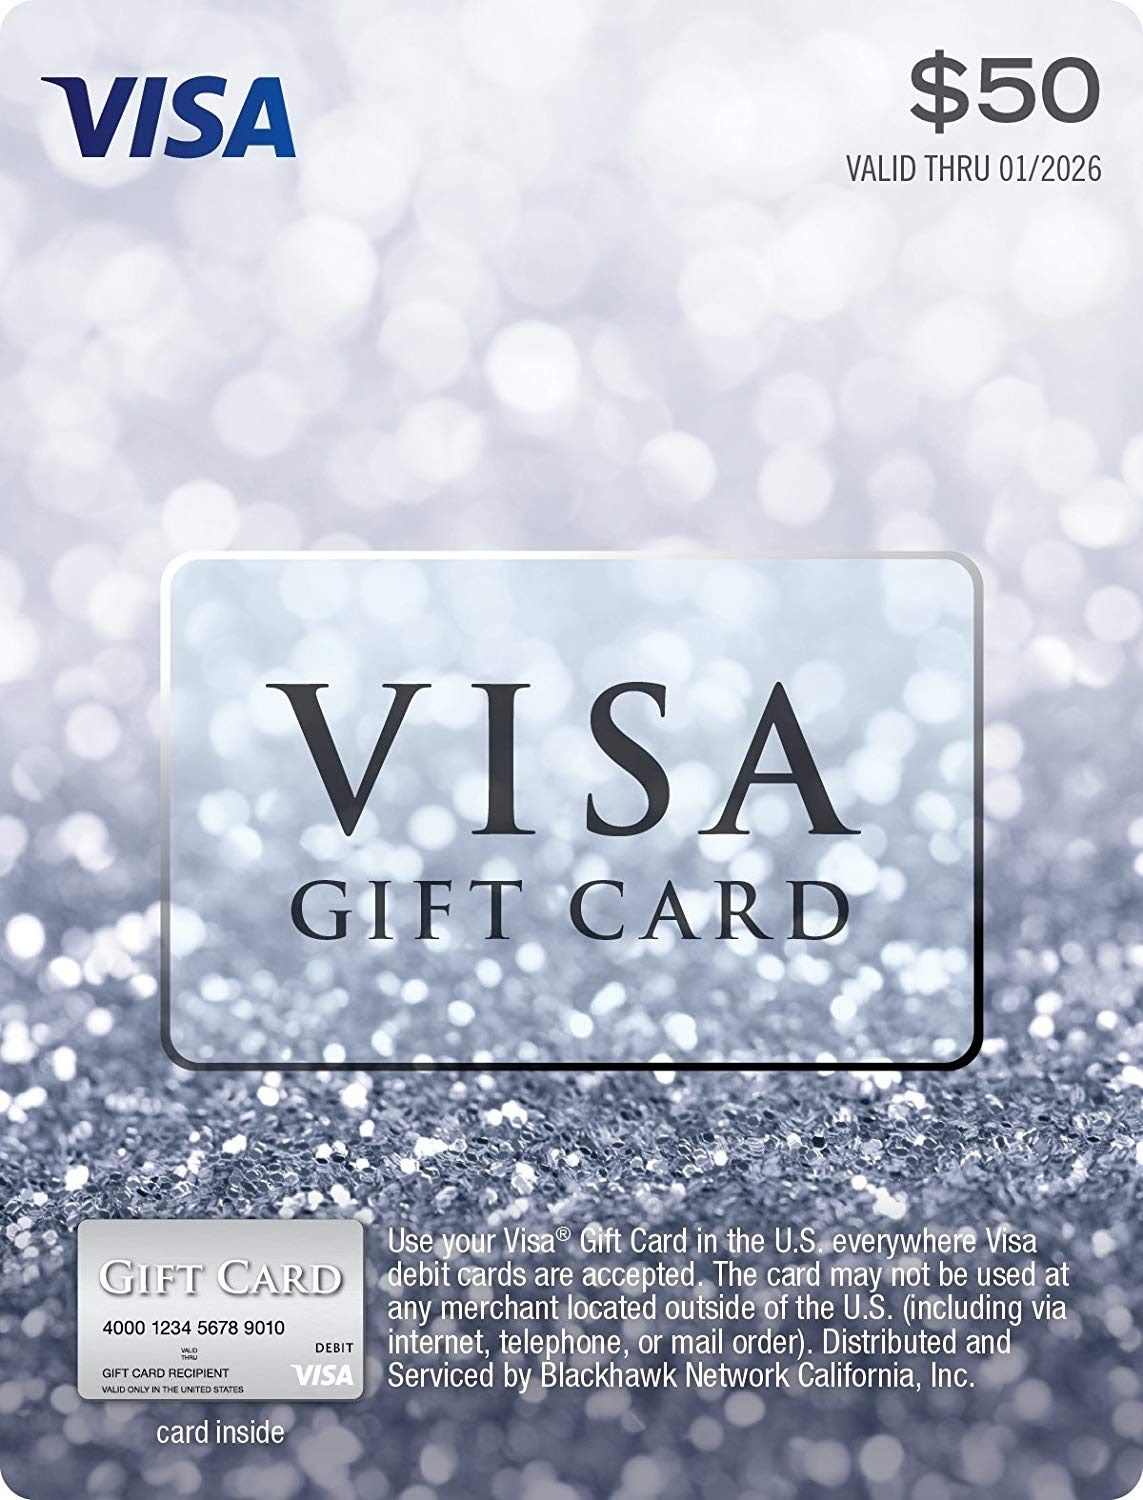 Who Sells Visa Gift Cards? - Do They Sell - Trusted Answers To